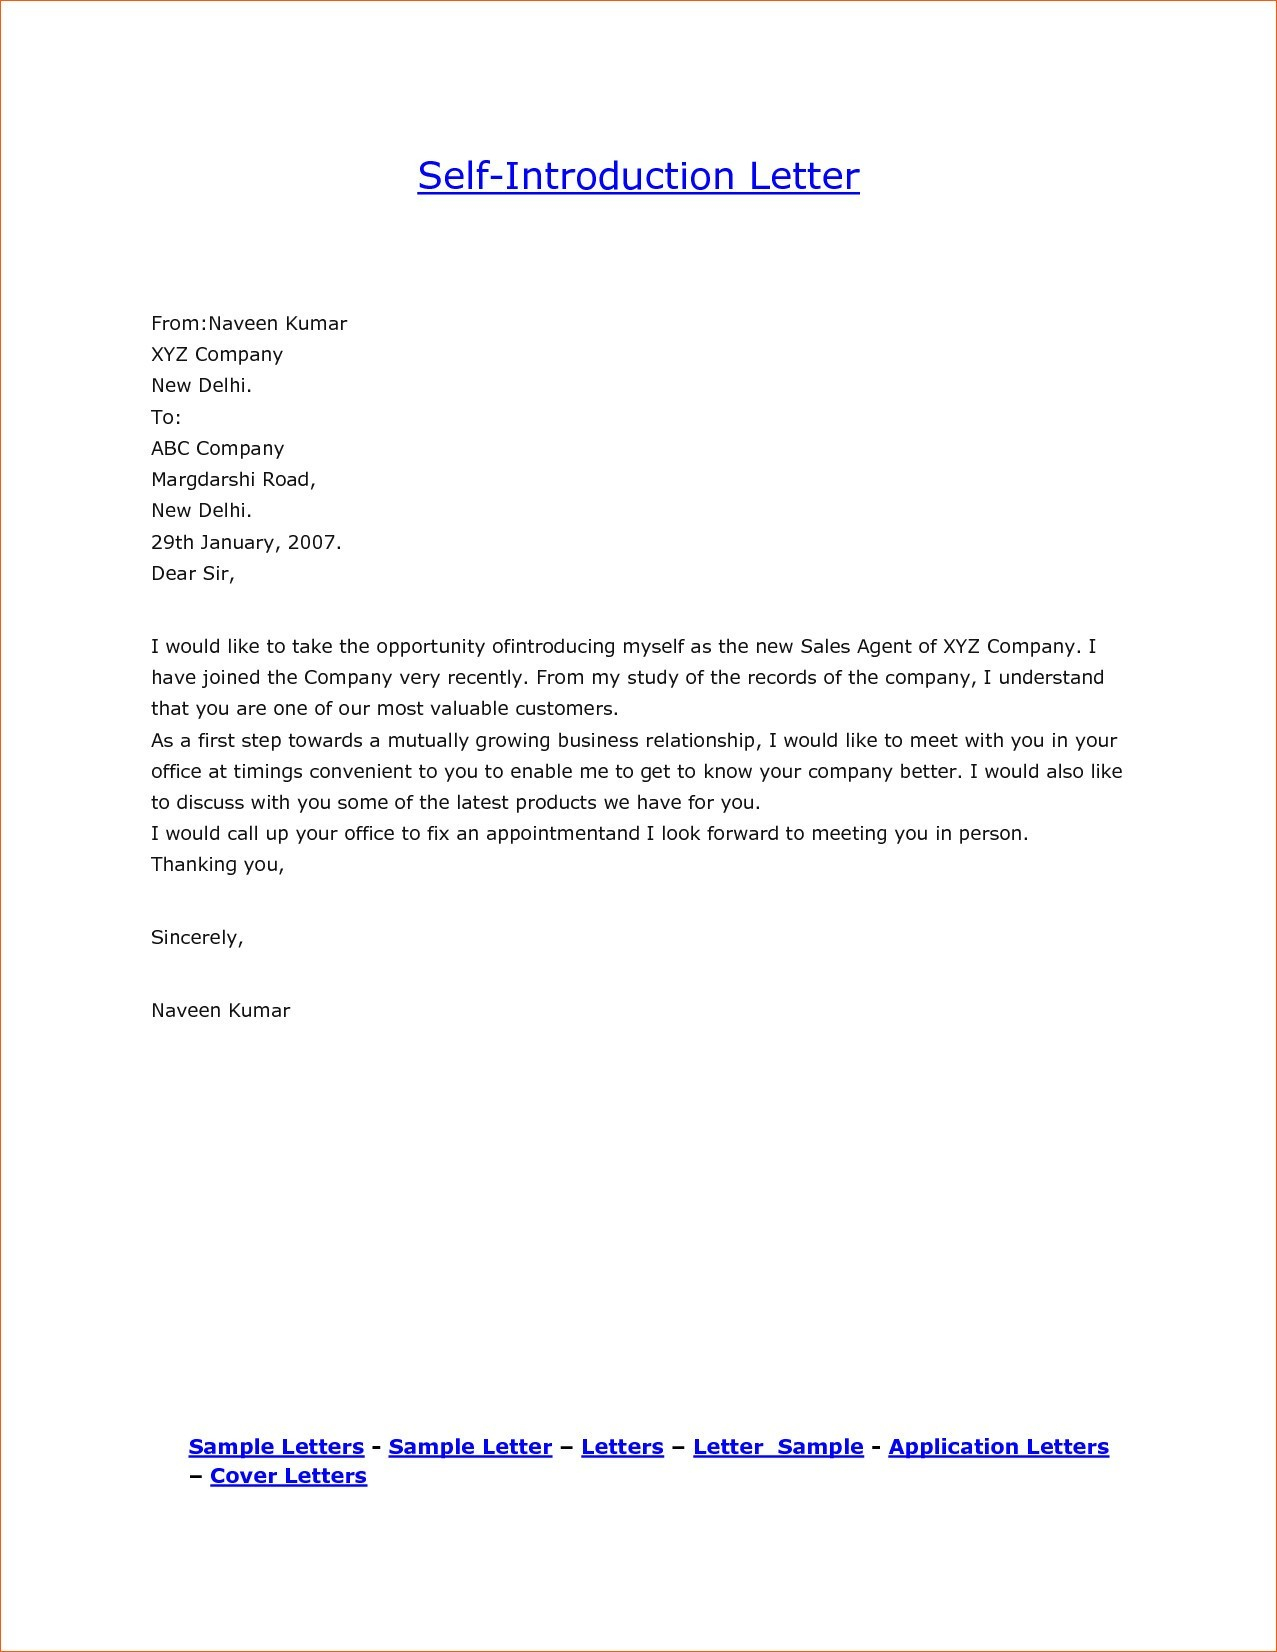 Cleaning business introduction letter template examples letter cleaning business introduction letter template wajeb Image collections